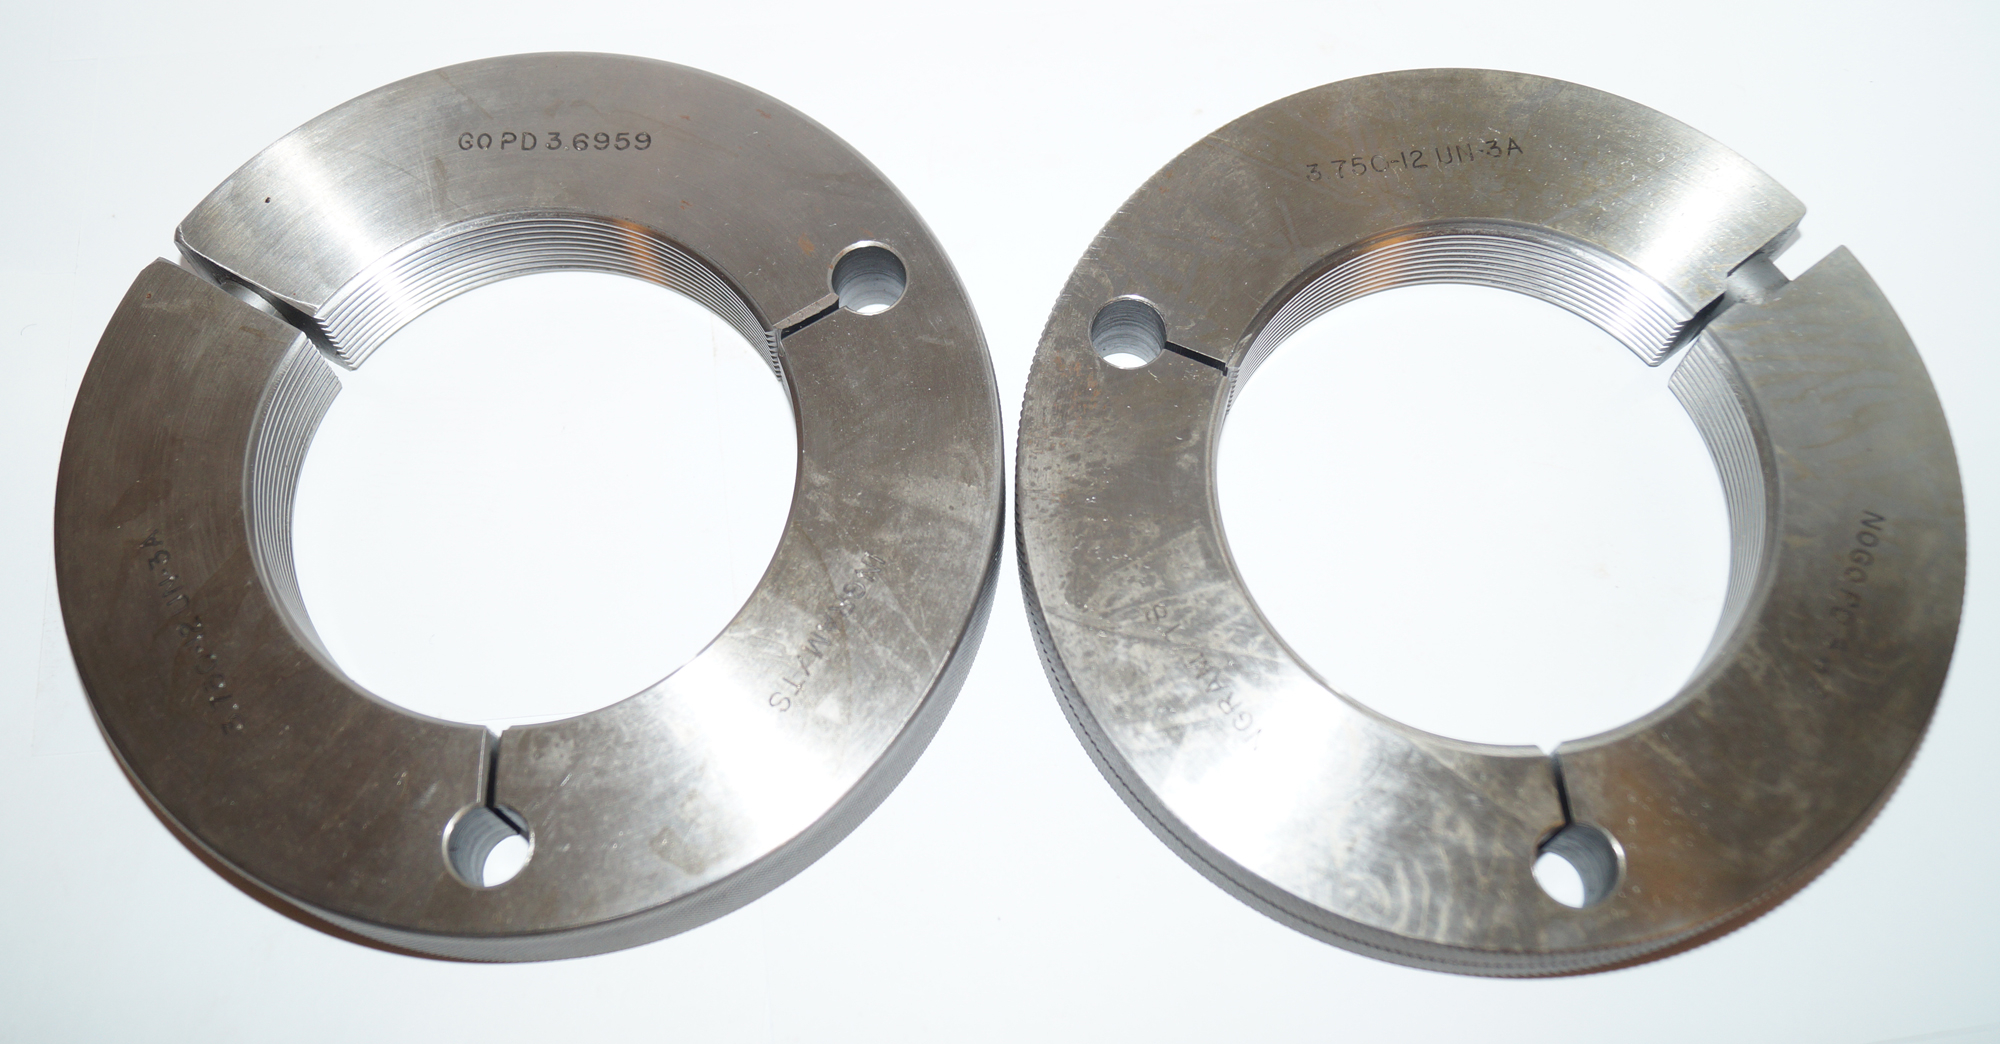 3-3/4-12-UN-3A Thread Ring Gage Set, Go NoGo 3.75""